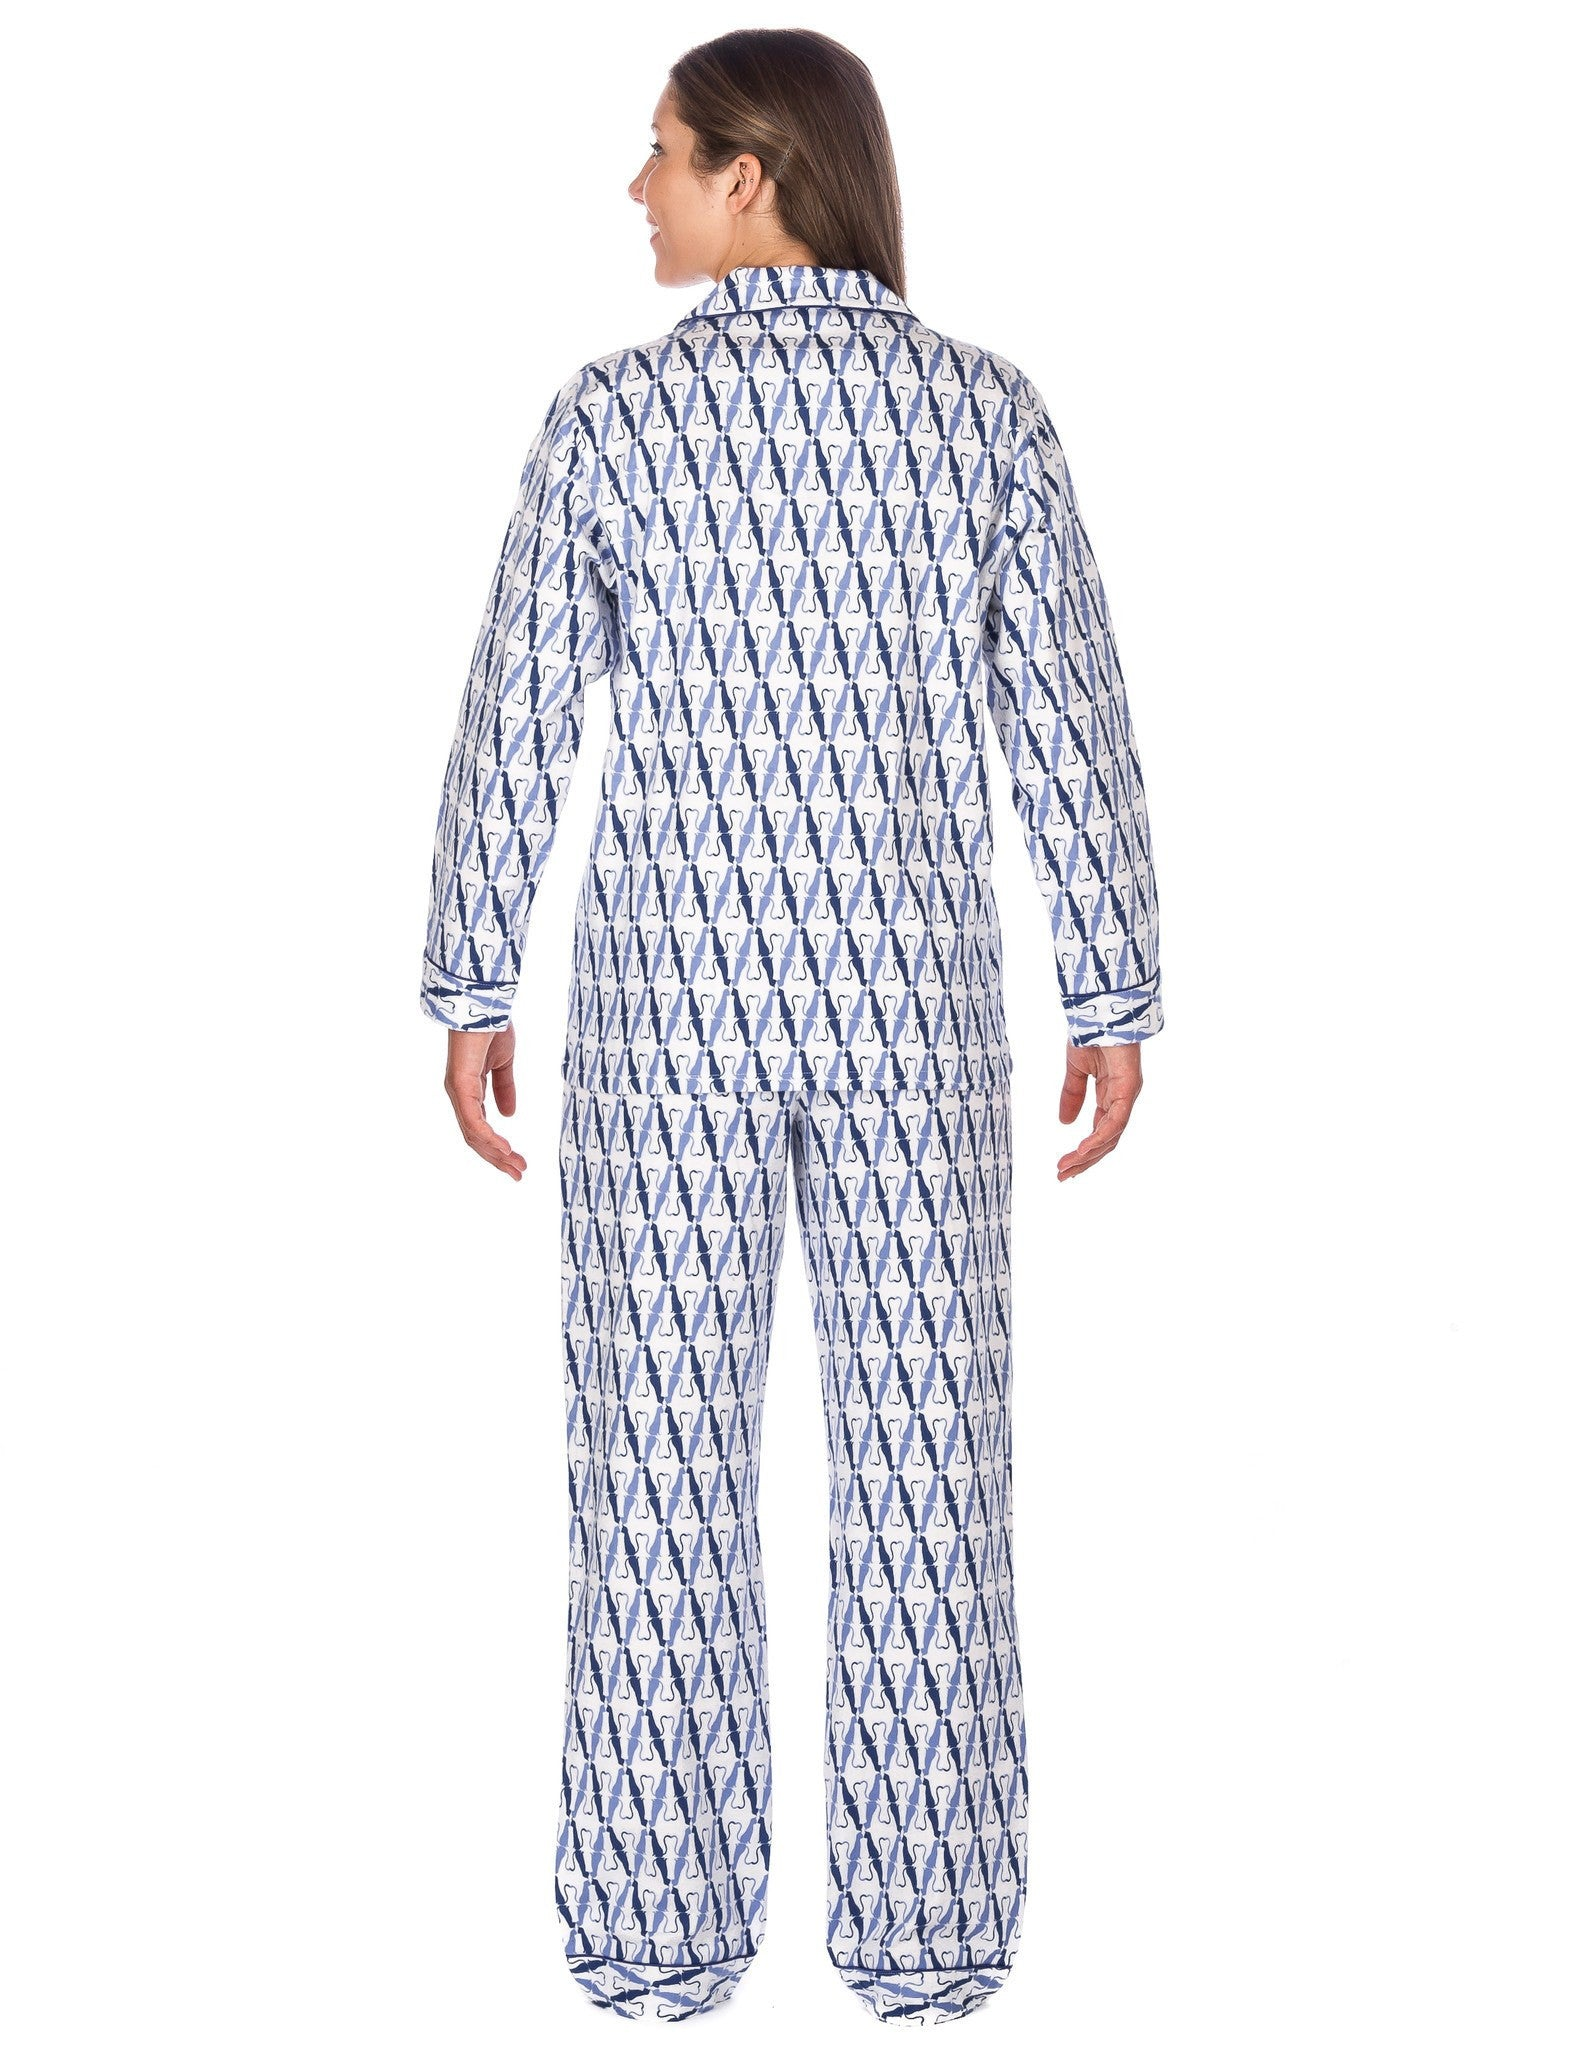 Women s Premium 100% Cotton Flannel Pajama Sleepwear Set (Relaxed Fit) Its  A Cats World - White Blue e8c5afe80